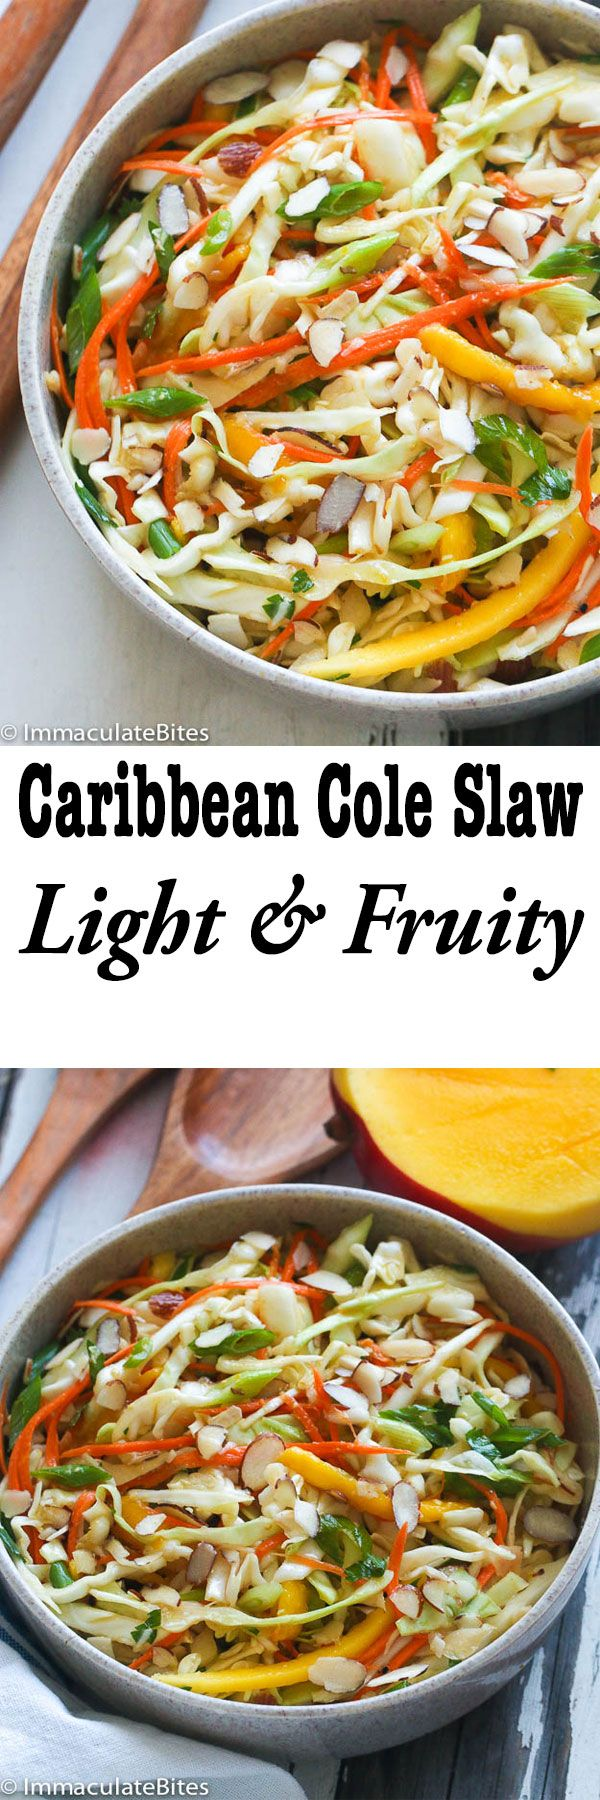 Caribbean Cole Slaw-A Mayo-Free  Coleslaw – Light, Fruity , Sweet and Refreshingly  Good!  Makes the perfect no-cook side dish. Add your favorite protein and make it a meal! Am giving you an option to switch things up this summer with your coleslaw. And it's going to be sweet, nutty, a little bit of spice and a …